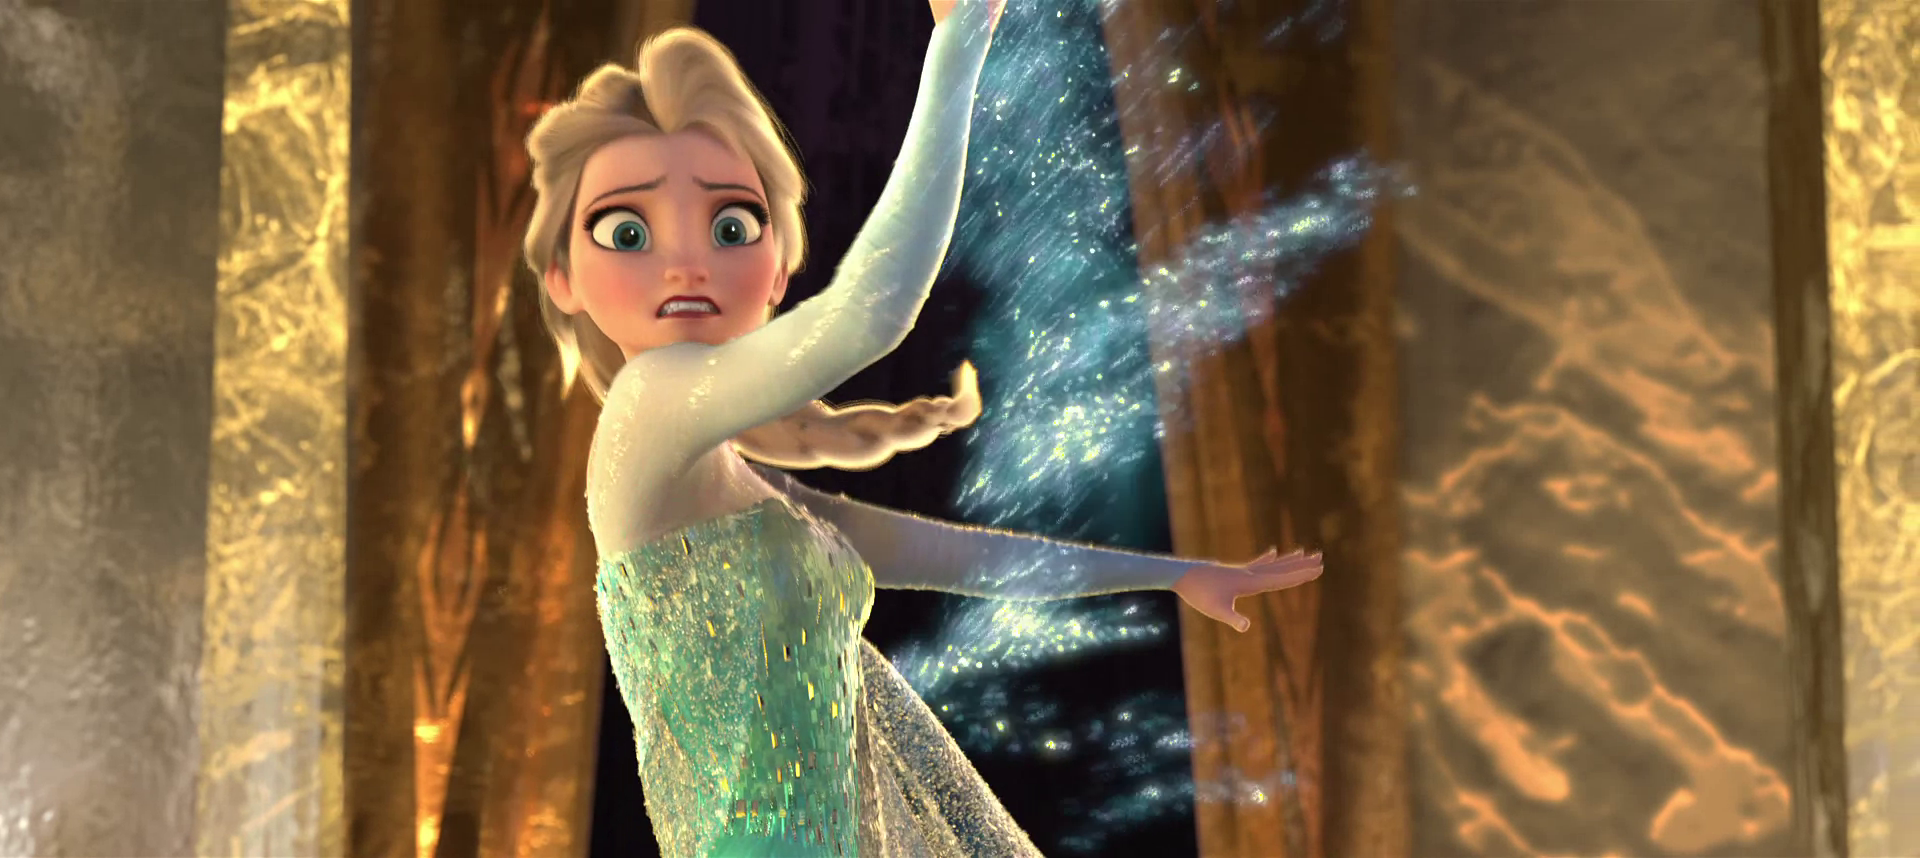 Frozen-Elsa-Screenshot-Wallpaper